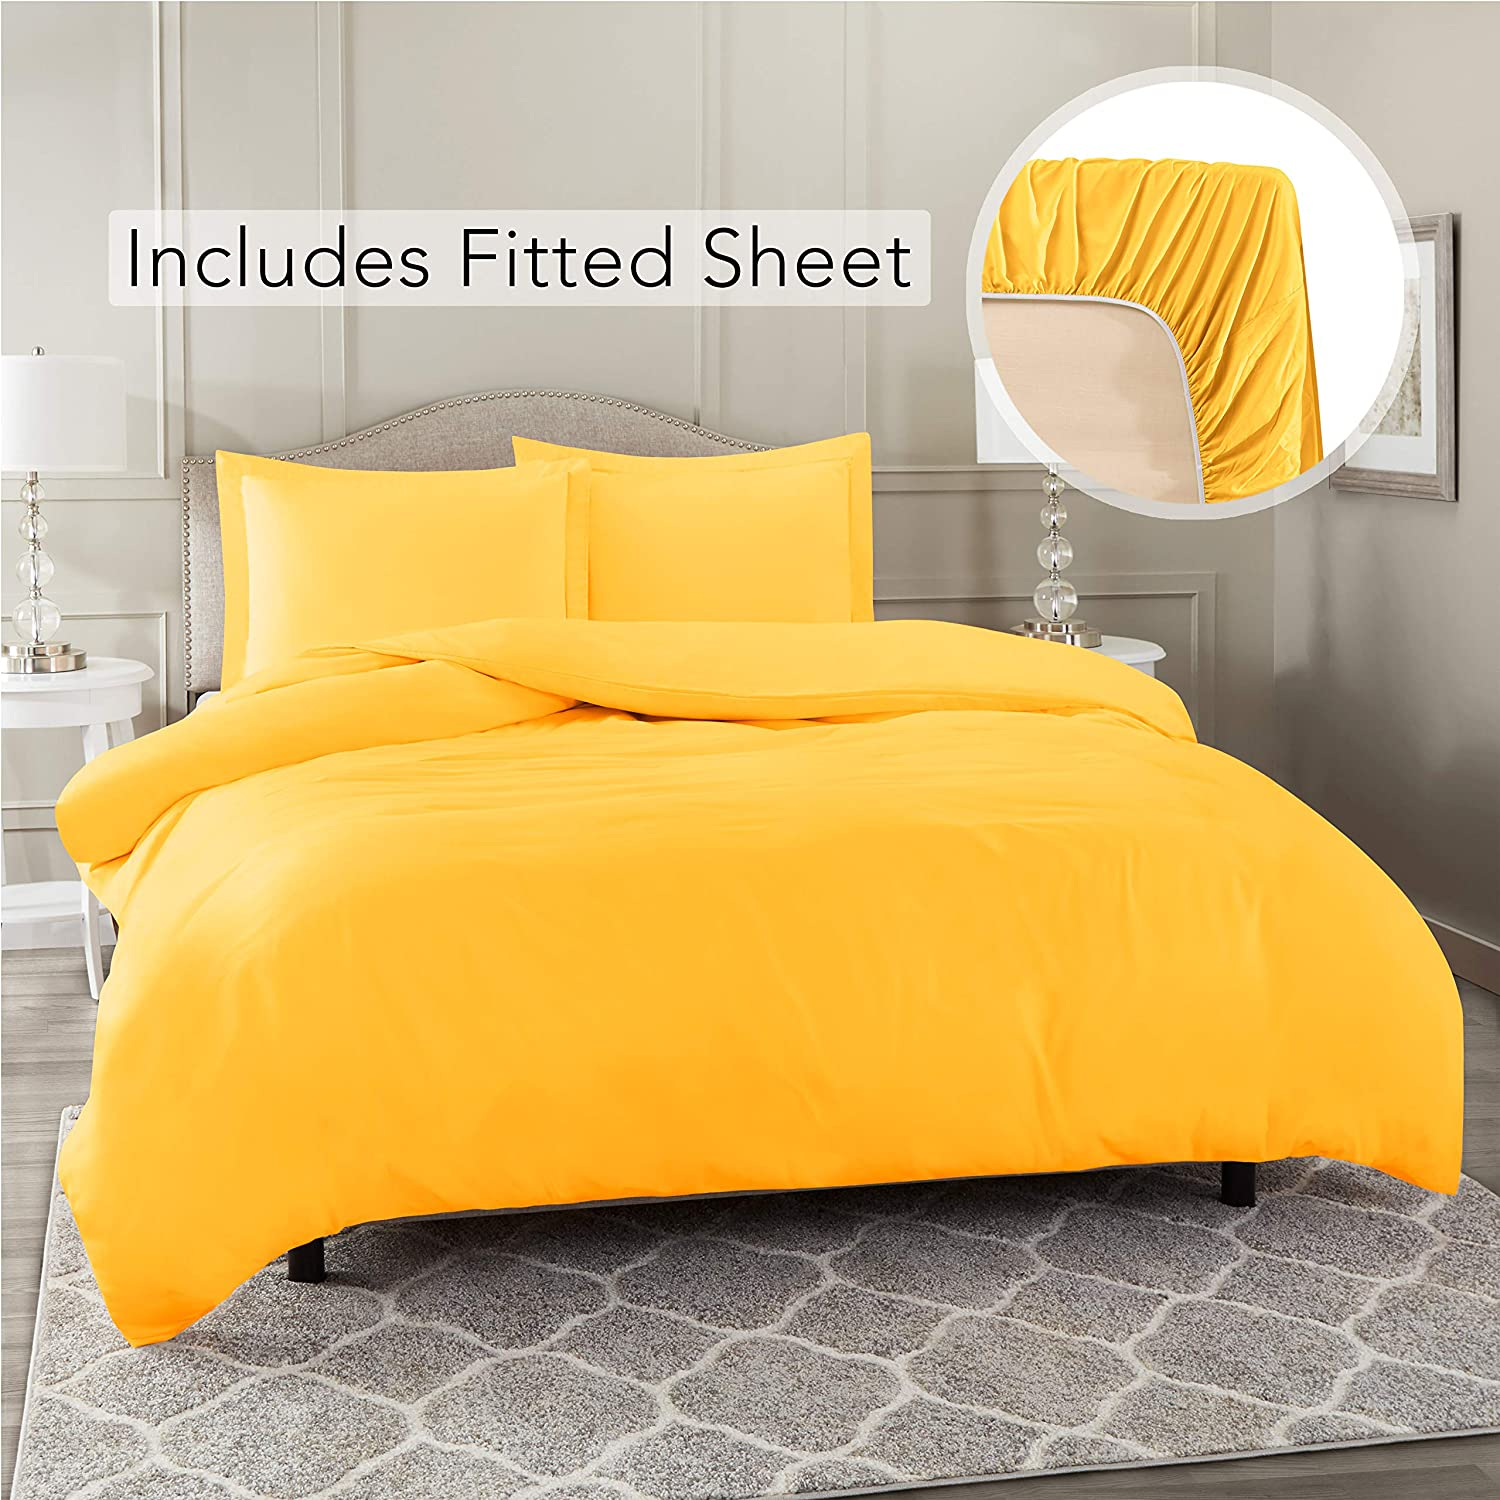 Nestl Bedding Duvet Cover with Fitted Sheet 5 Piece Set - Soft Double Brushed Microfiber Hotel Collection - Comforter Cover with Button Closure, 2 Fitted Sheets, 2 Pillow Shams, Split King - Yellow